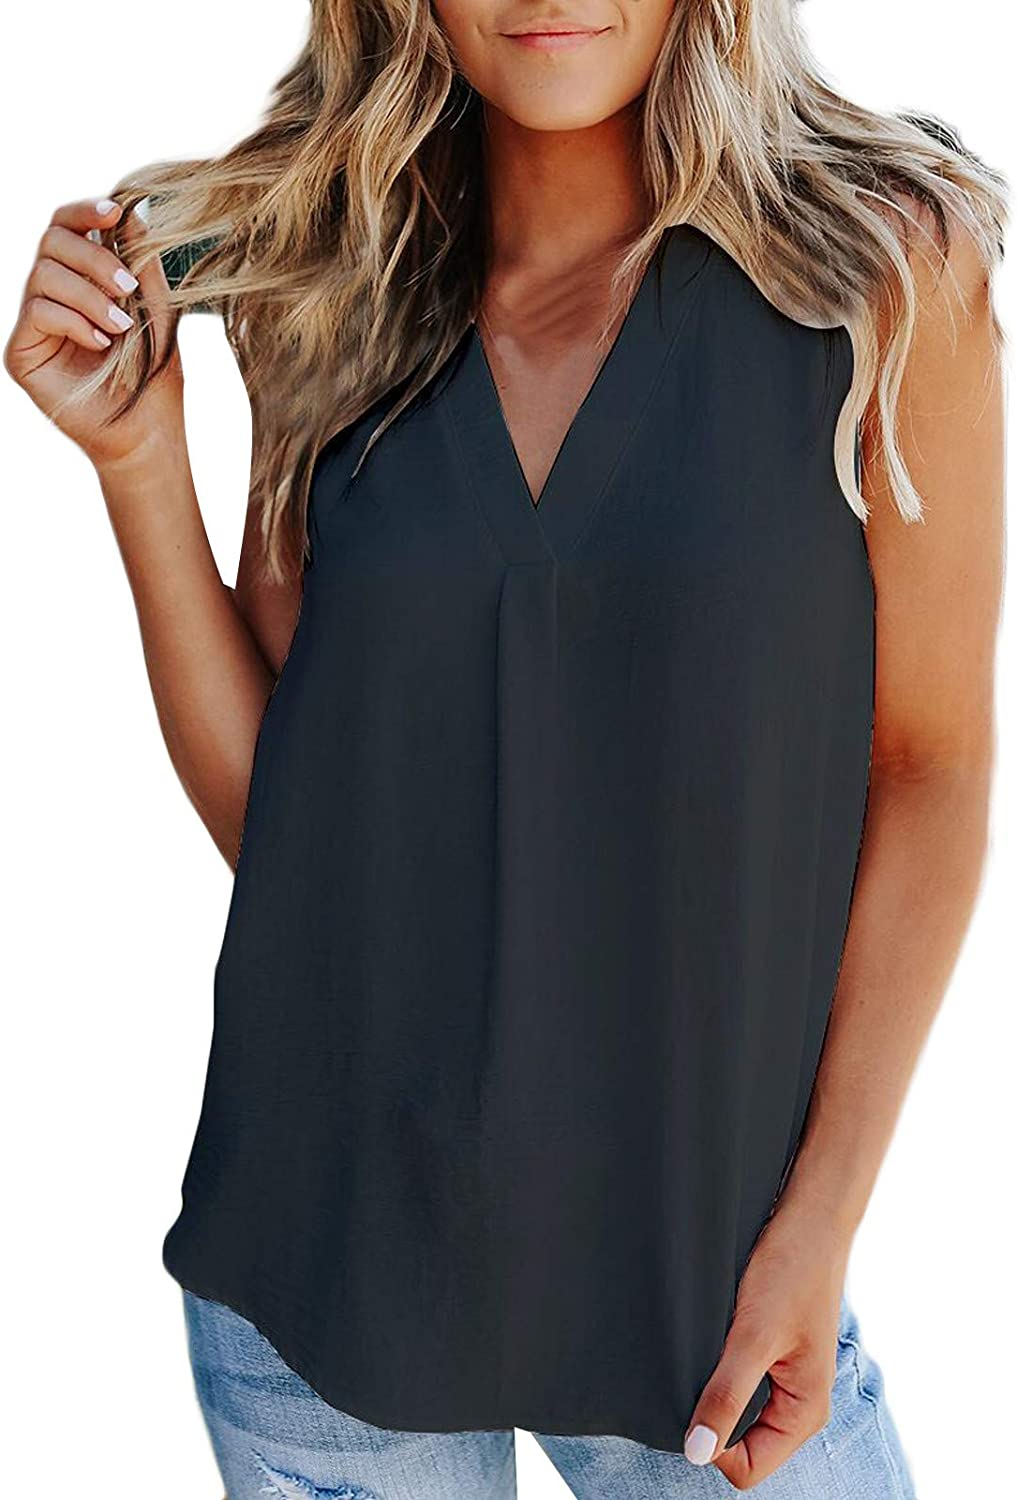 Tank Tops for Women Loose Fit Neck 5 Popular shop is the lowest price challenge popular Sleeveless V Sh Summer Casual